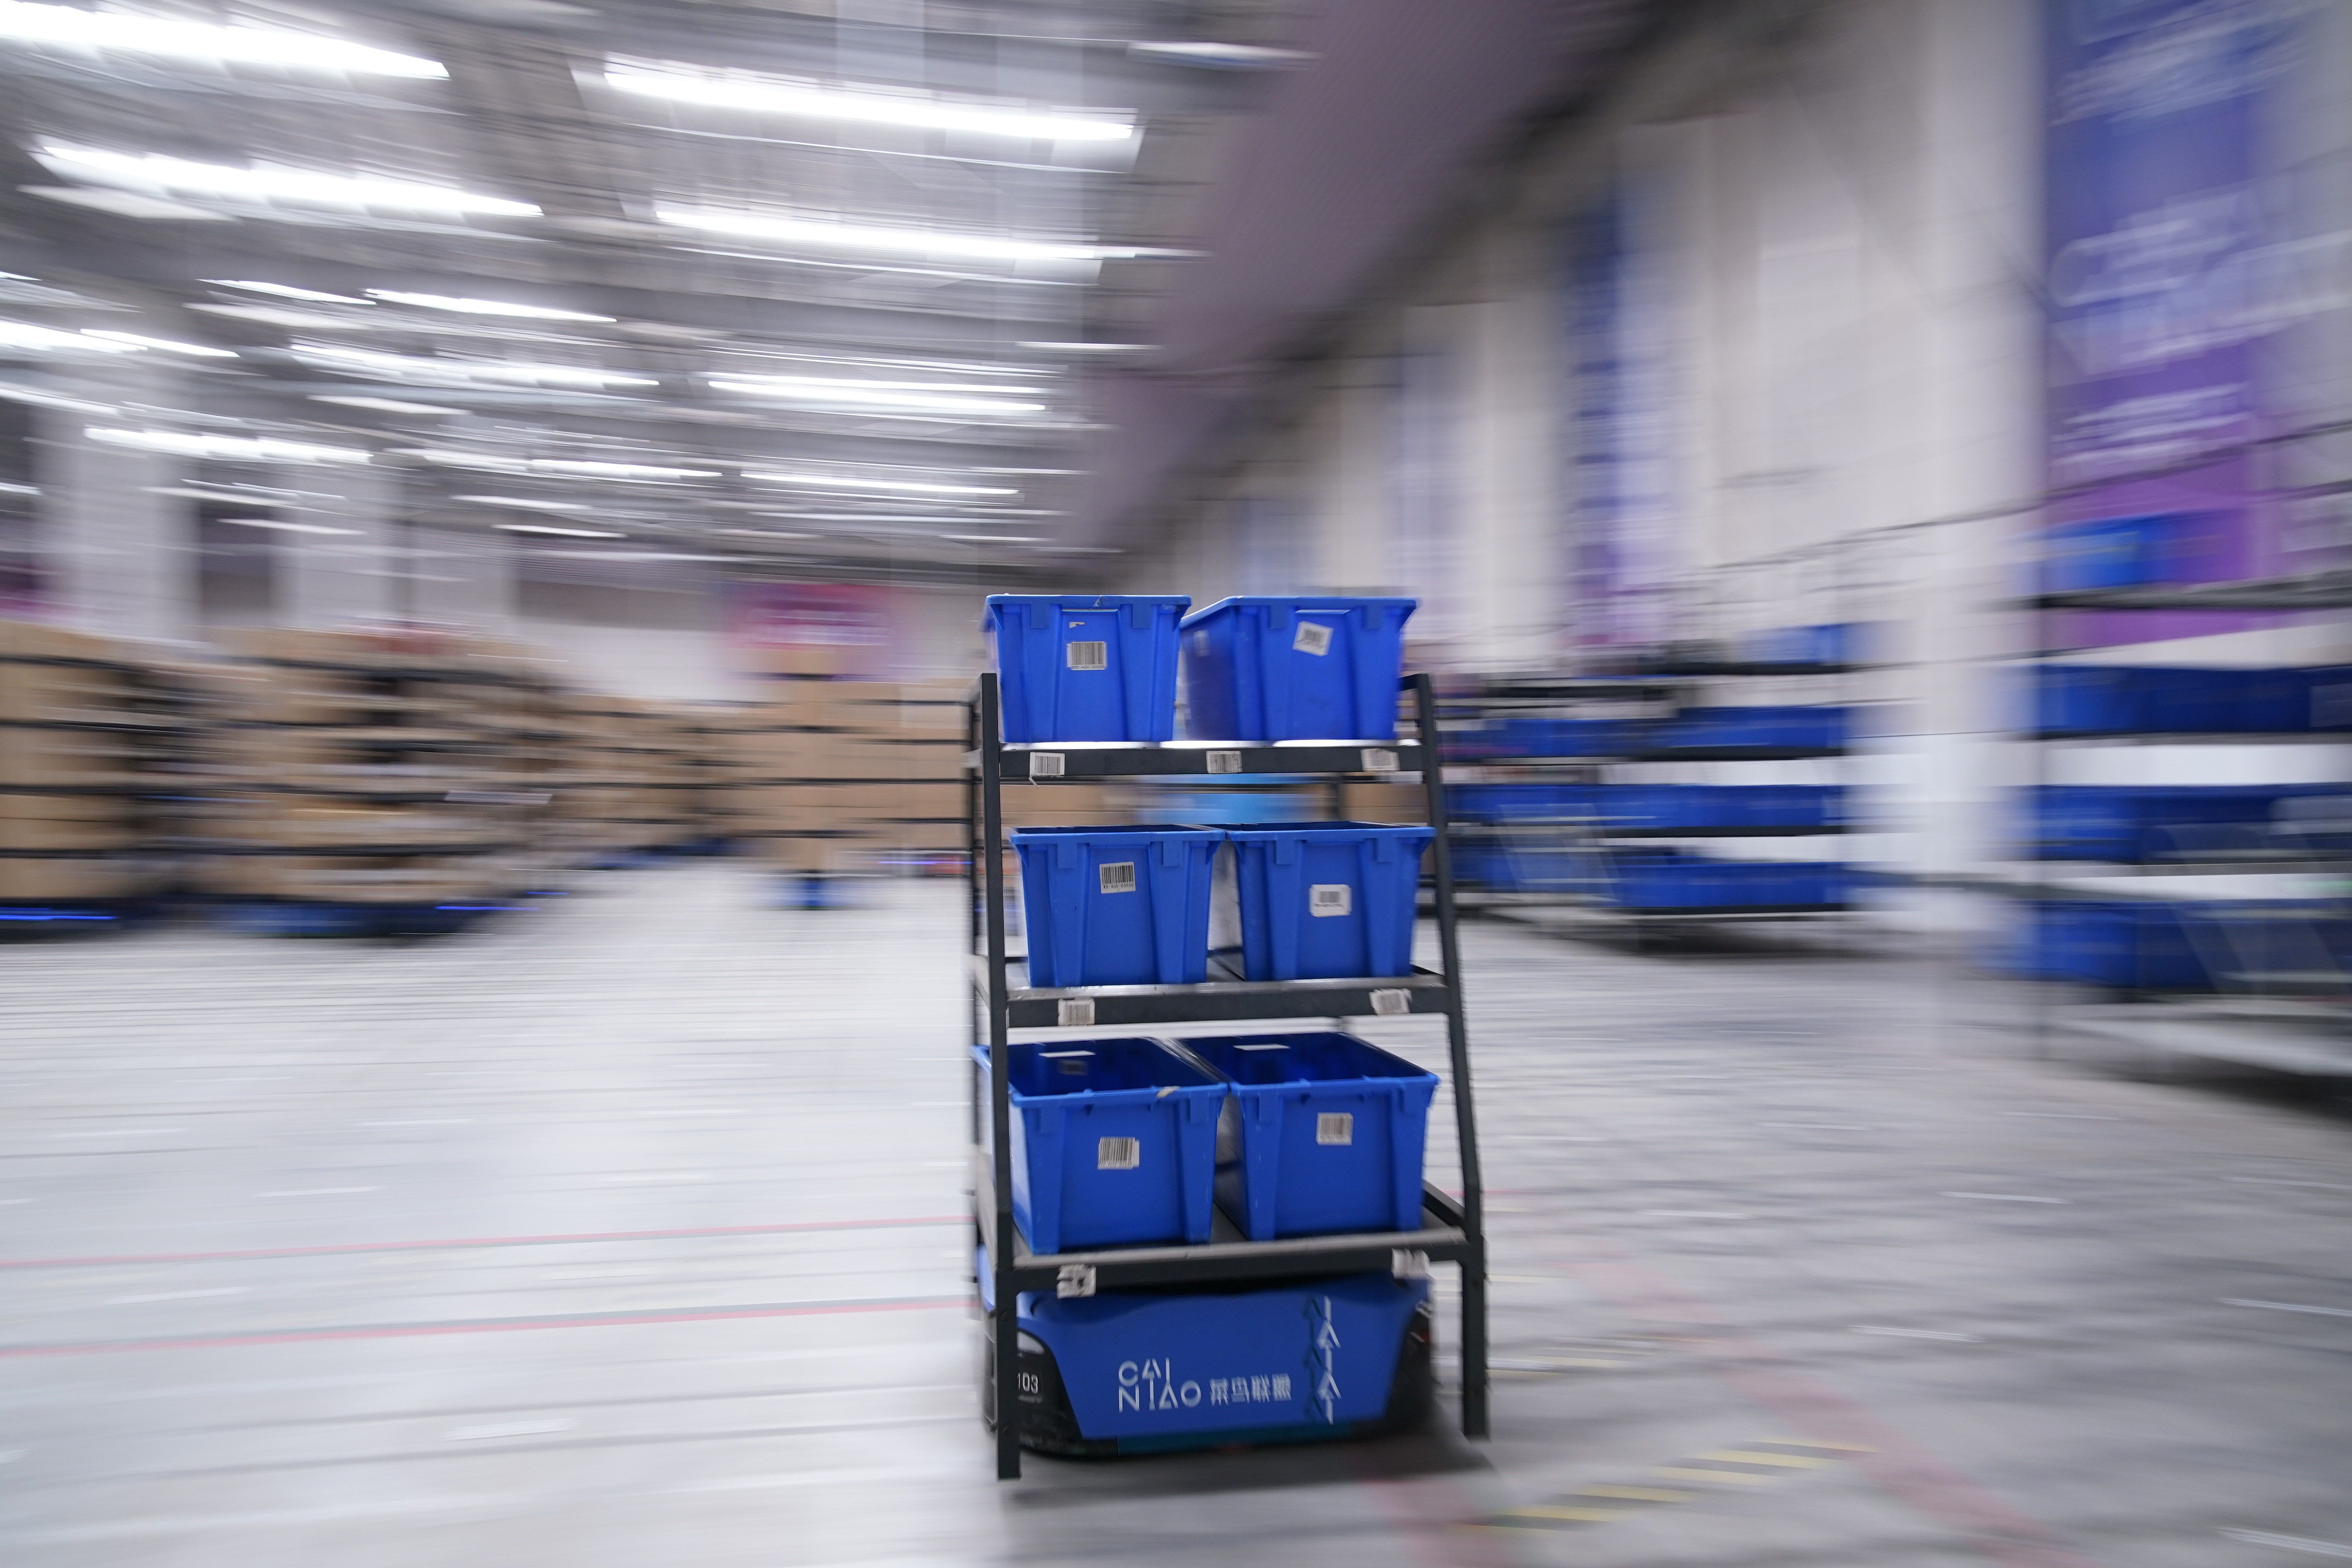 Robot works at a warehouse of Cainiao, Alibaba's logistics unit in Wuxi, Jiangsu province, China October 26, 2020. Picture taken October 26, 2020. REUTERS/Aly Song - RC2VQJ9TTS03